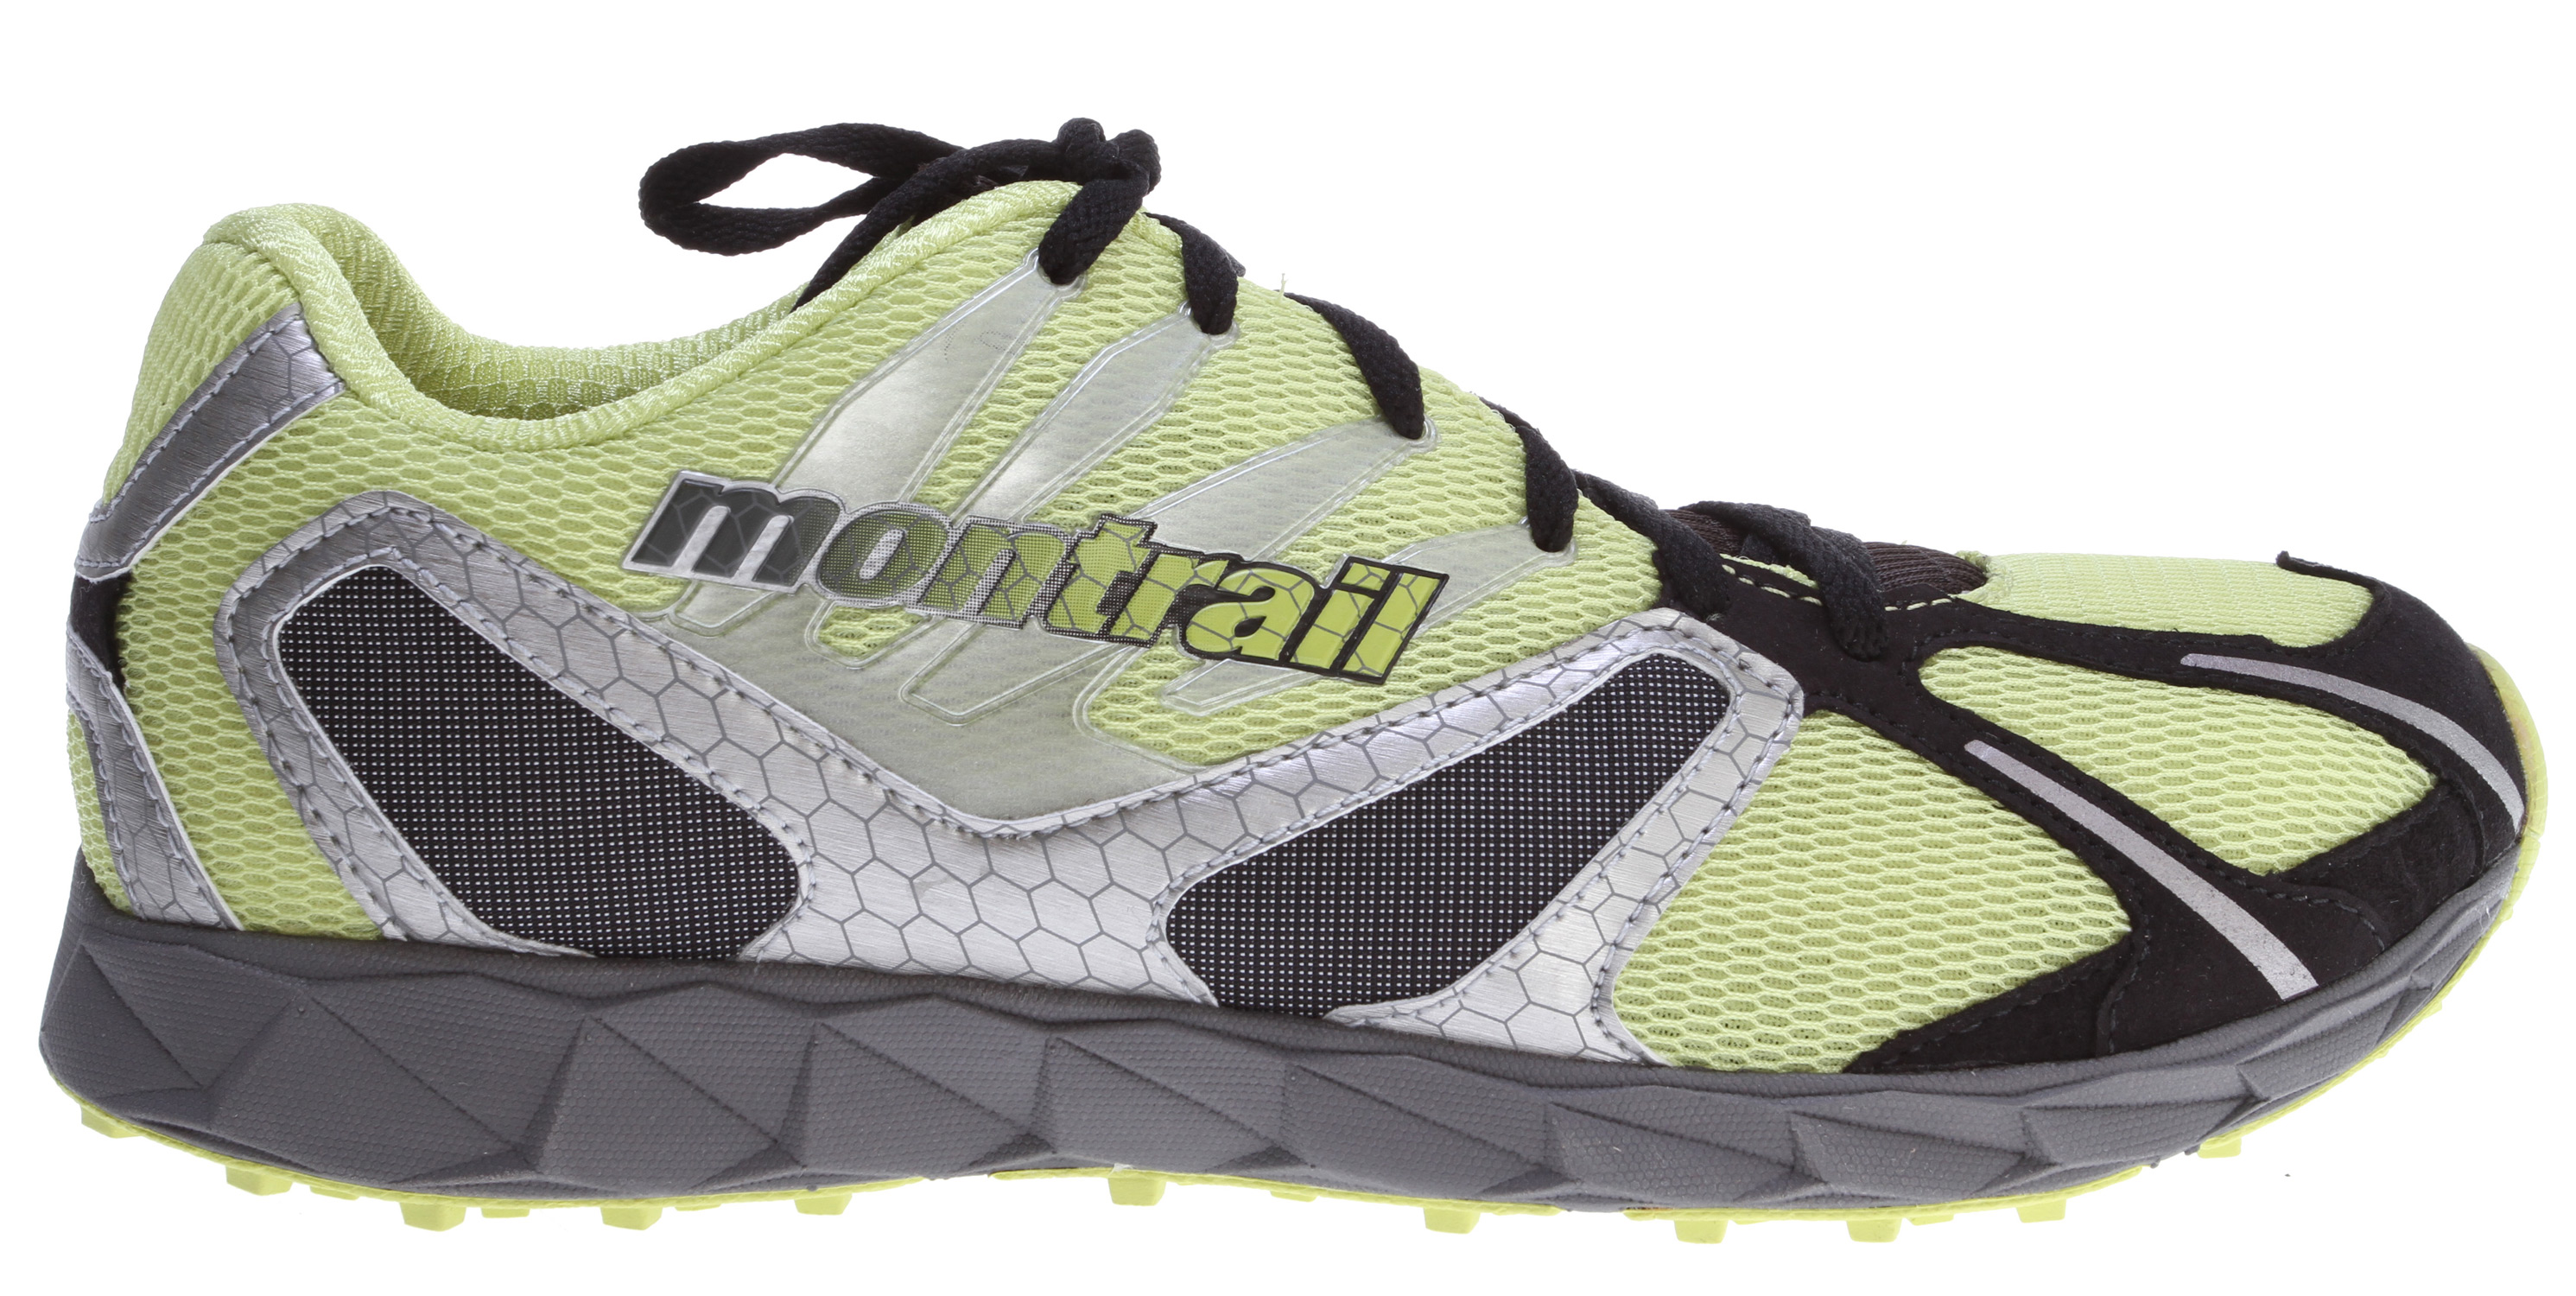 Camp and Hike Ultra-lightweight trail racing flat designed for trail racers who crave minimalism and low profile performanceKey Features of the Montrail Rogue Racer Hiking Shoes: Weight: 8.8 oz / 250 g Durometer: 55 Asker C ( /-3 degrees  Fit Notes: Secure fit - $65.95